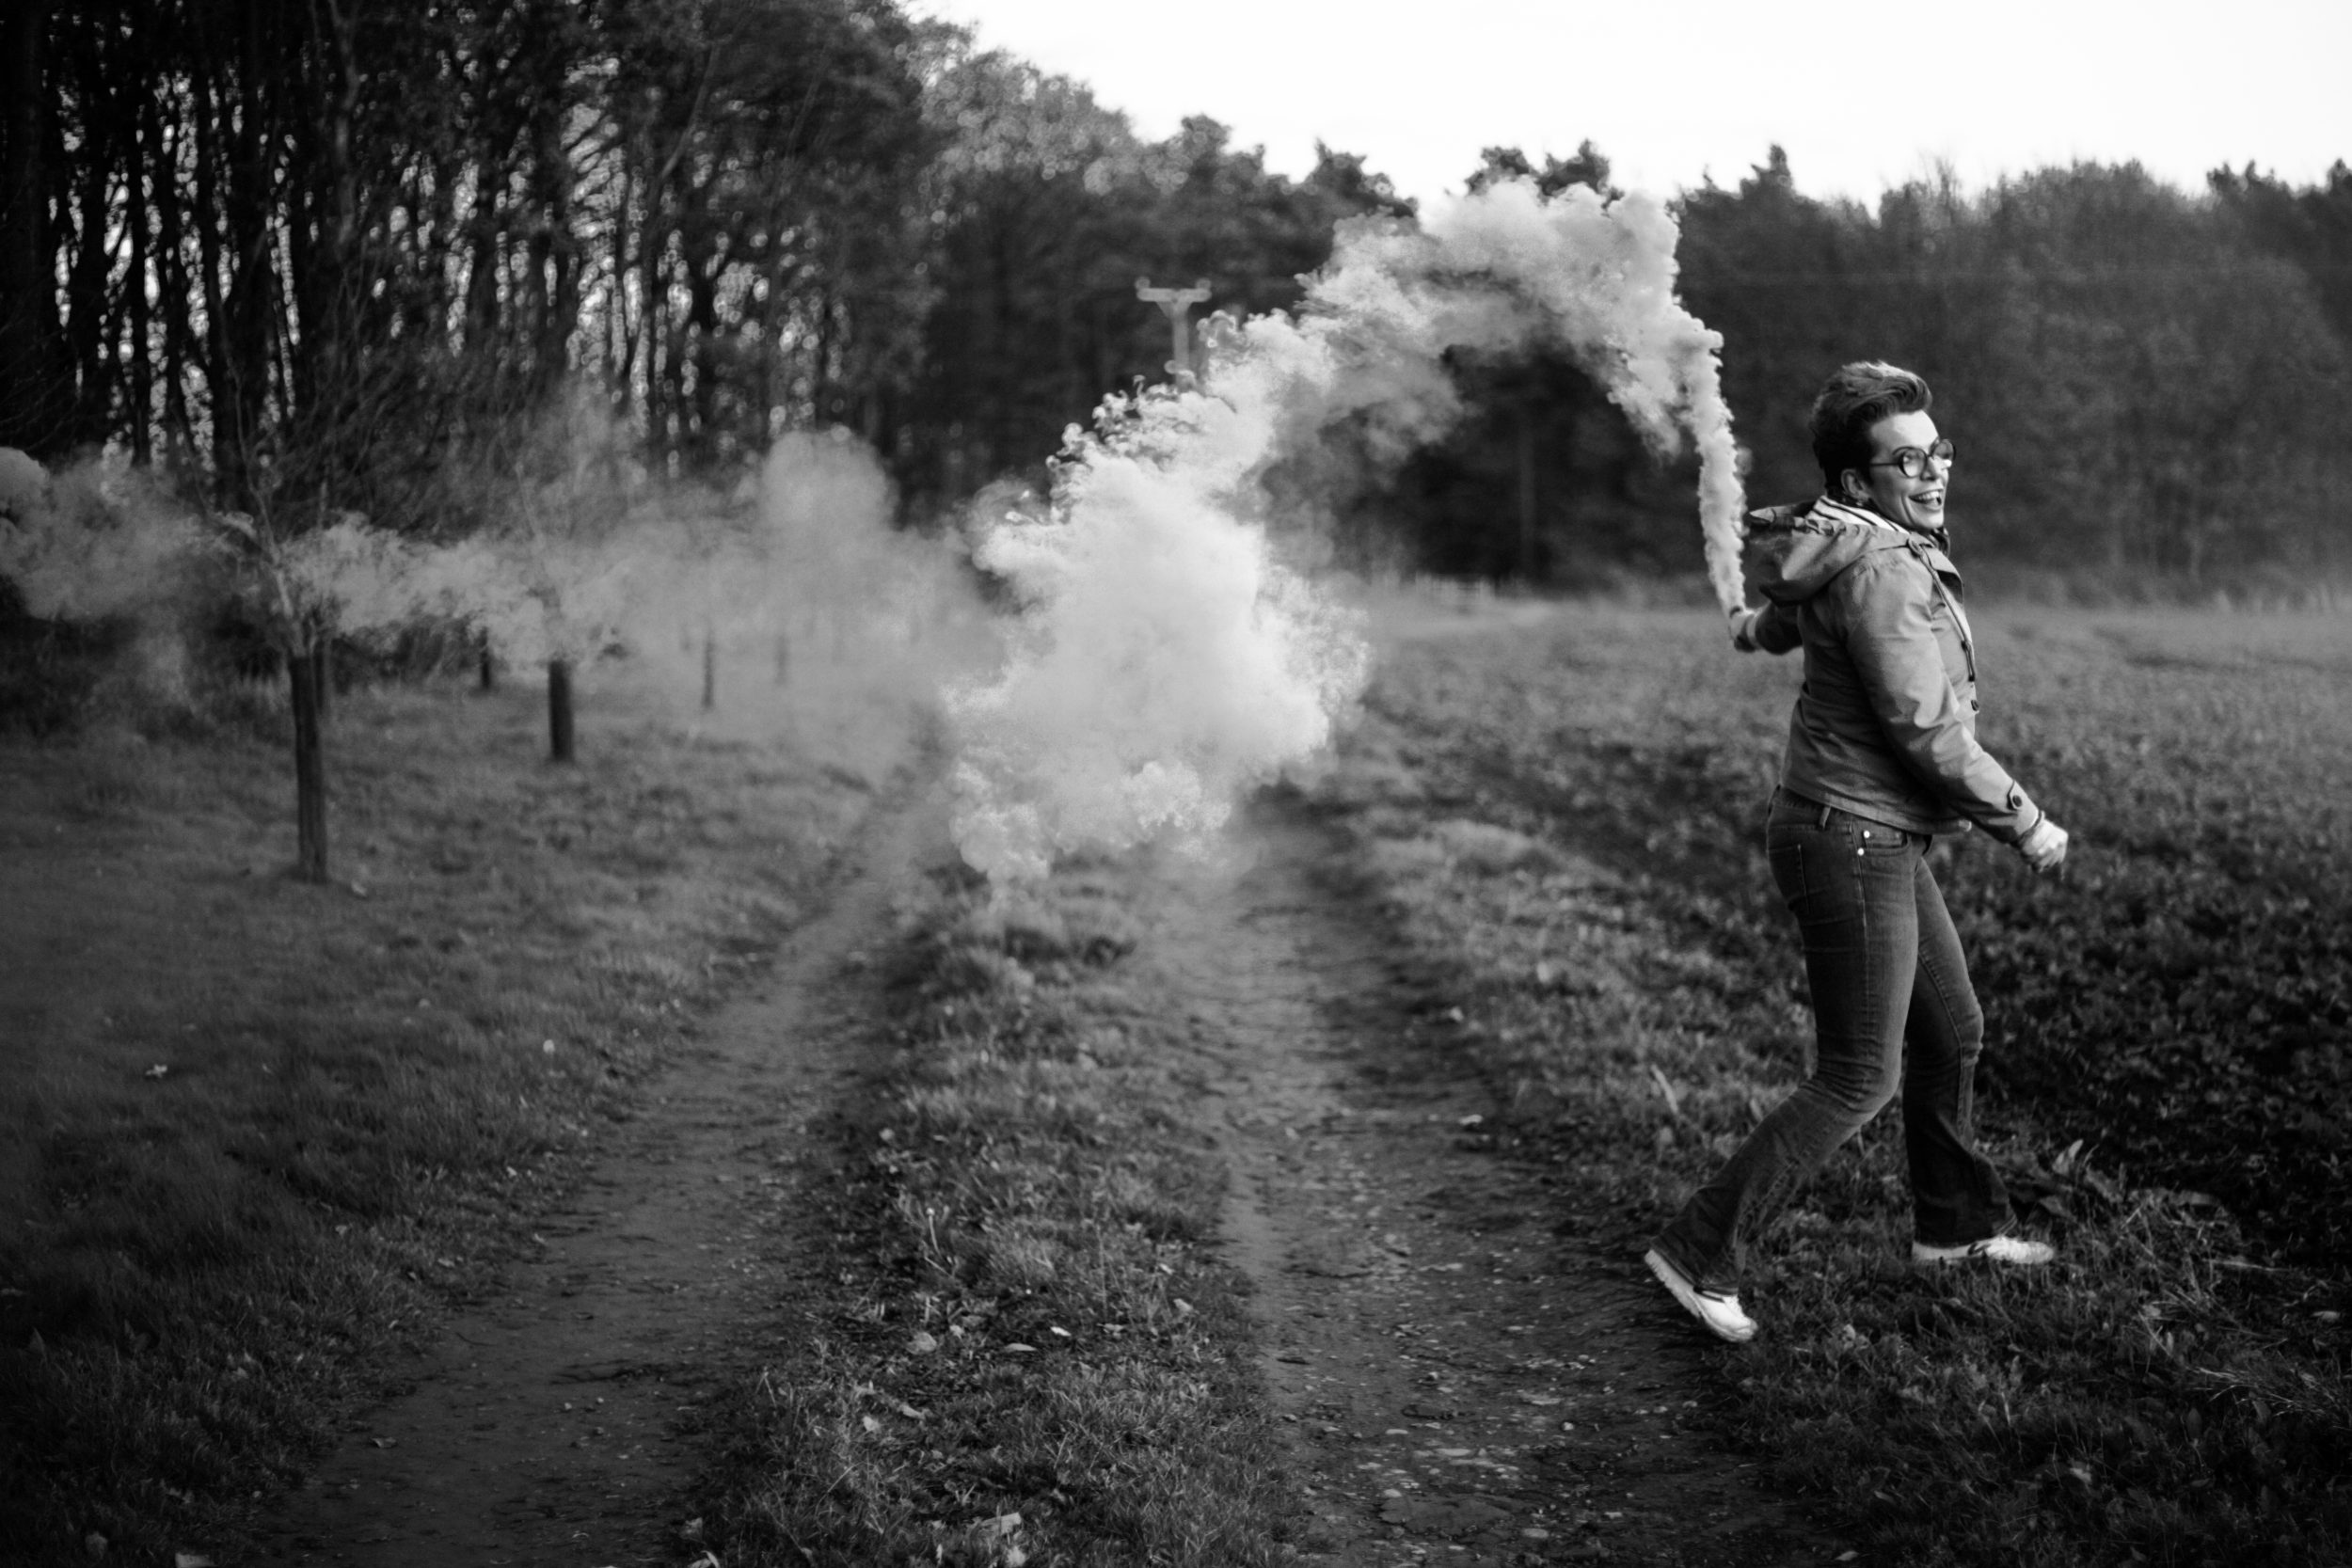 A black and white photograph of Carrie running with a smoke bomb